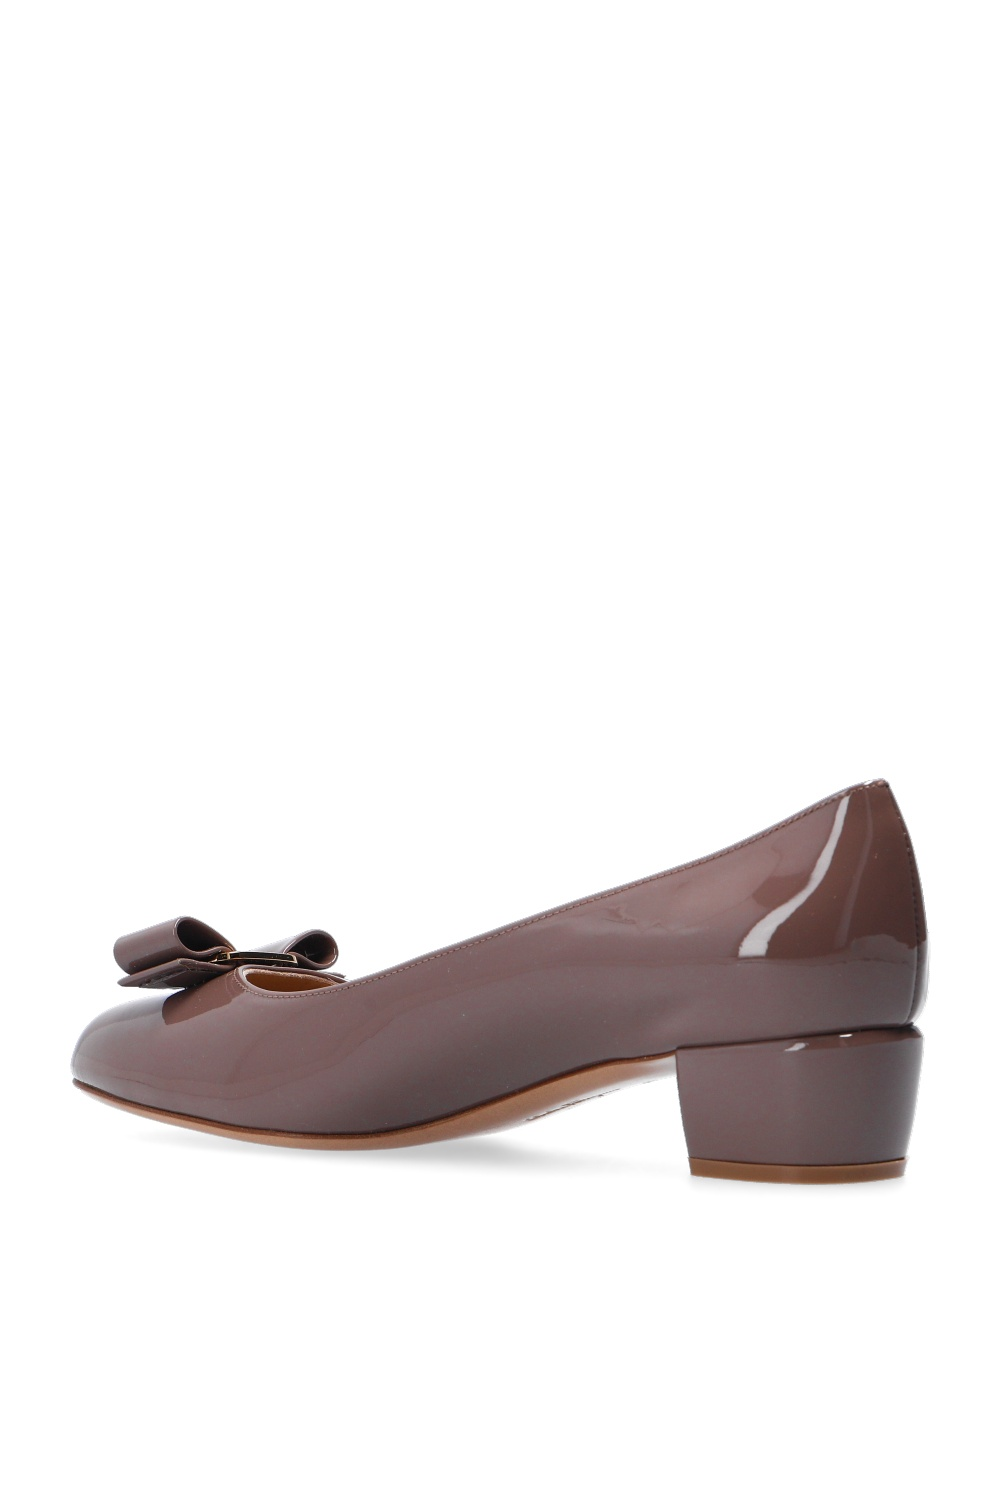 Salvatore Ferragamo 'Vara' heeled pumps